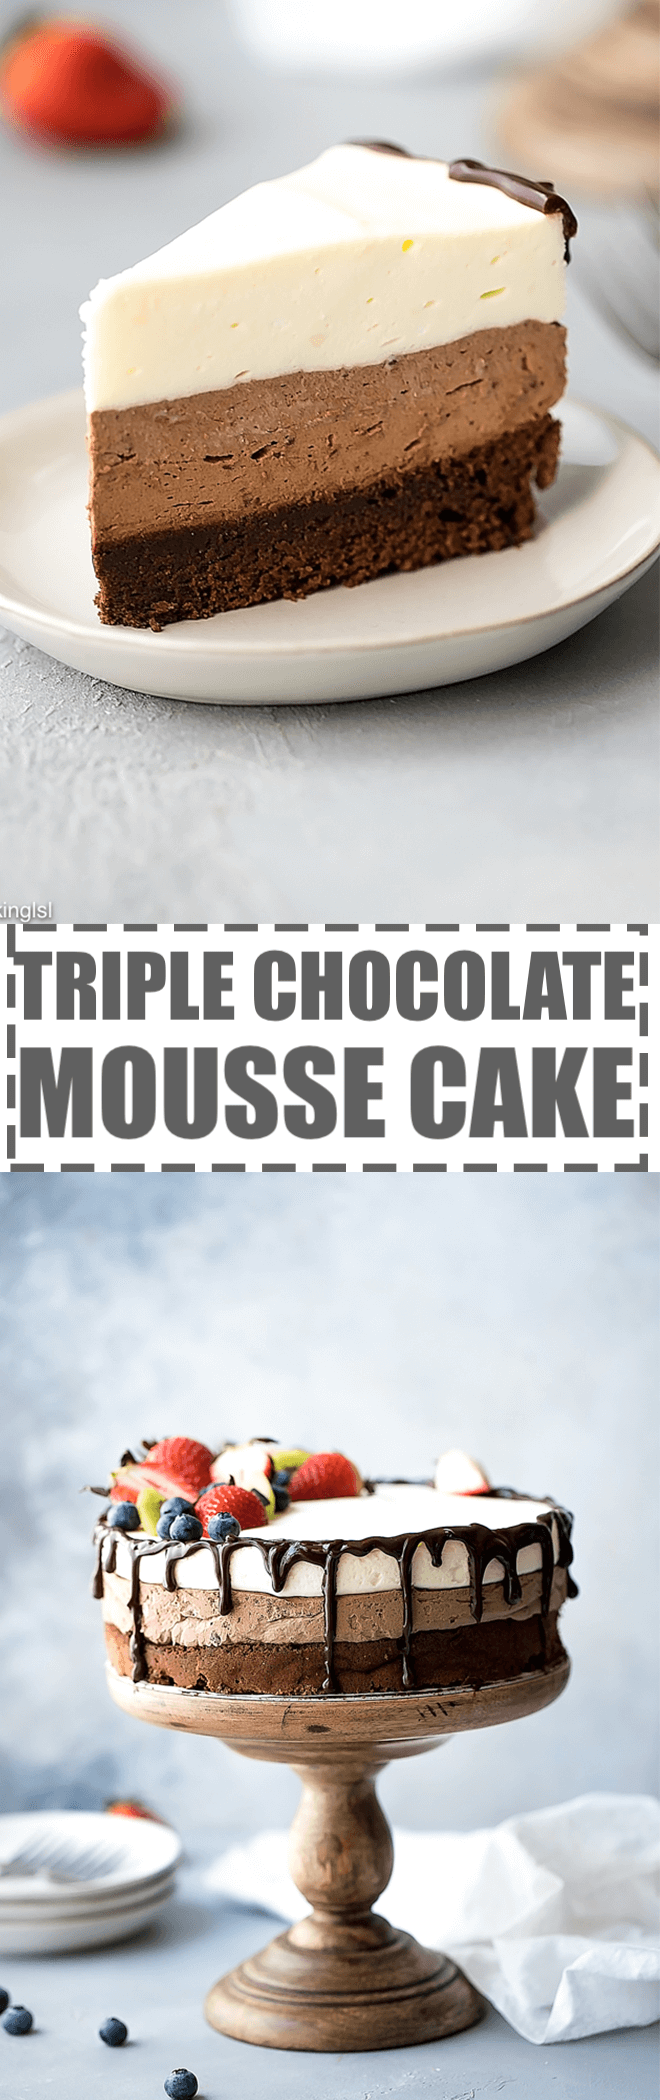 This triple chocolate mousse cake is rich, smooth, creamy and full of flavor. It features layer of chocolate souffle cake, rich chocolate mousse and white chocolate mousse on top. Garnished with chocolate ganache and berries. Great for any occasion and celebration. Perfect for chocolate lovers!